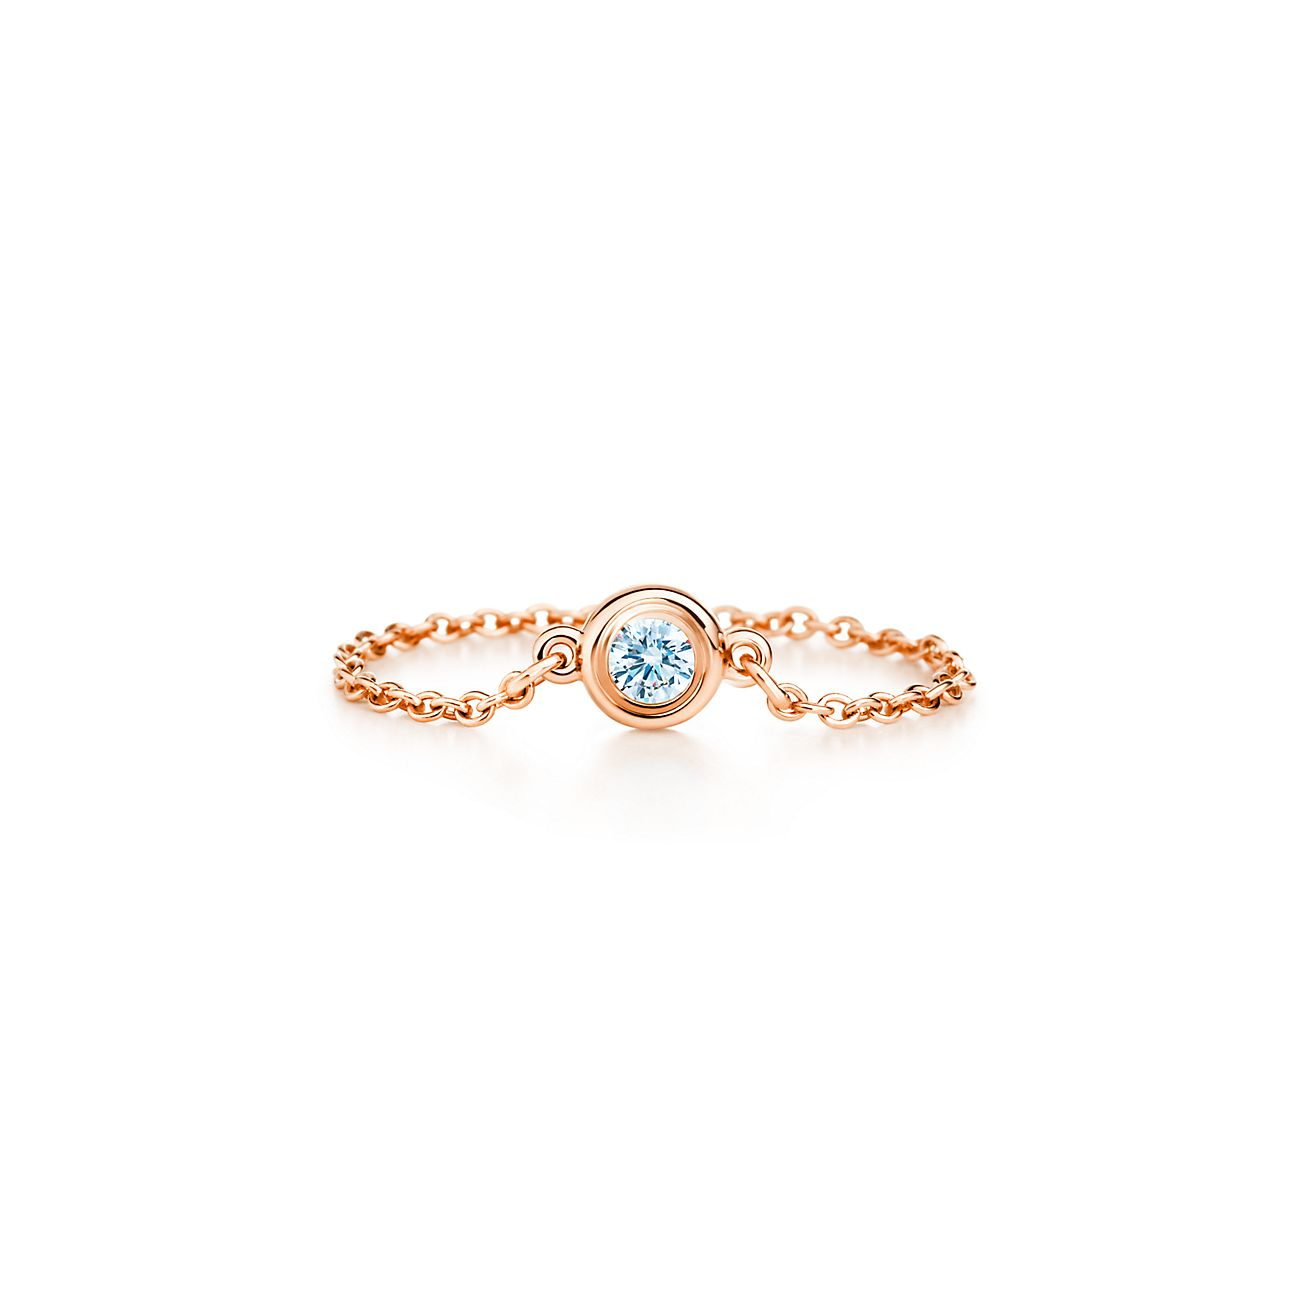 Elsa Peretti Diamonds by the Yard ring in 18k rose gold - Size 4 Tiffany & Co.